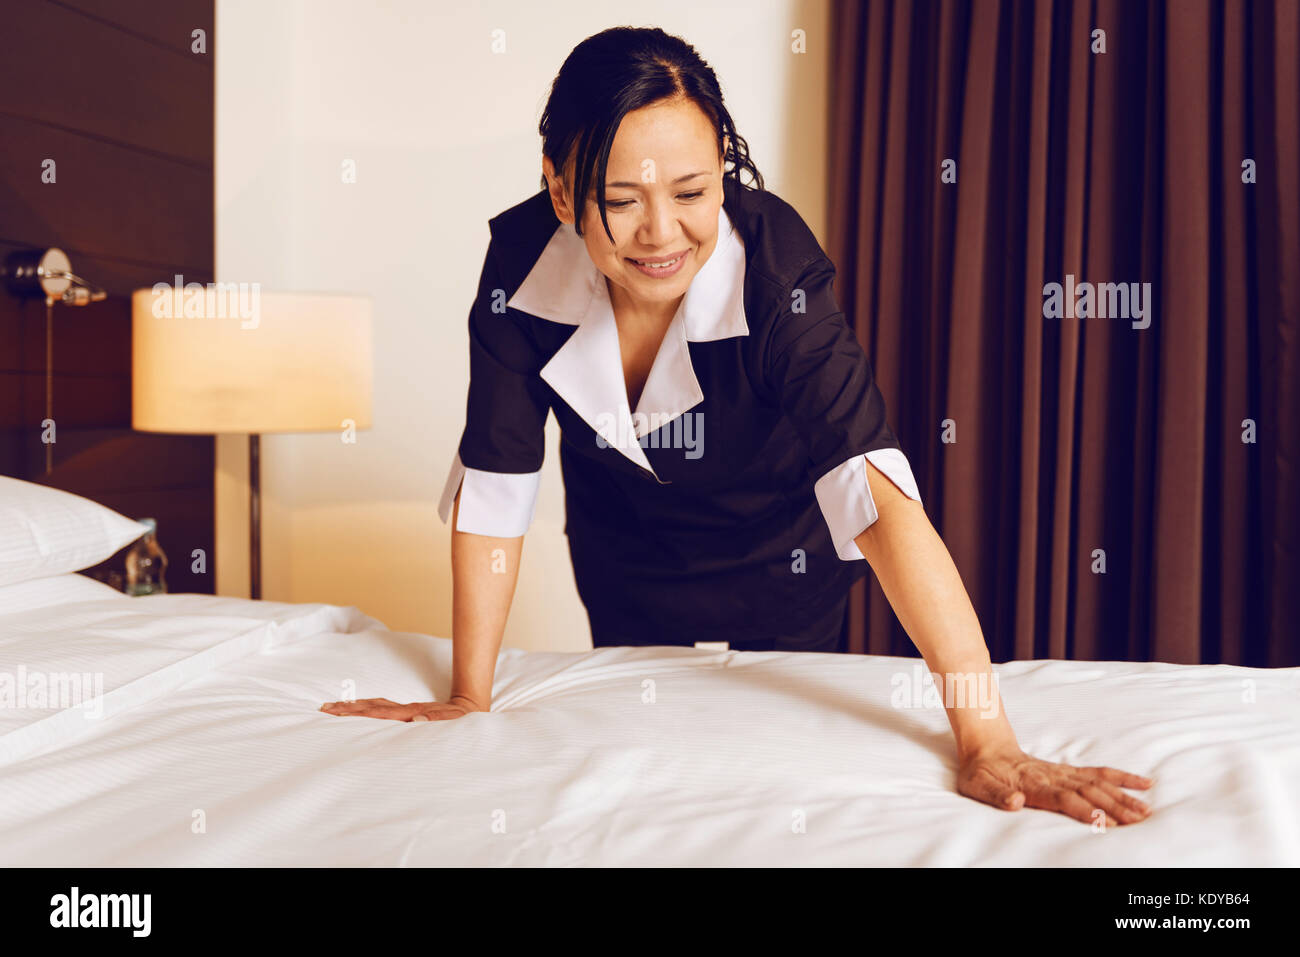 Attentive foreign hotel staff making bed - Stock Image